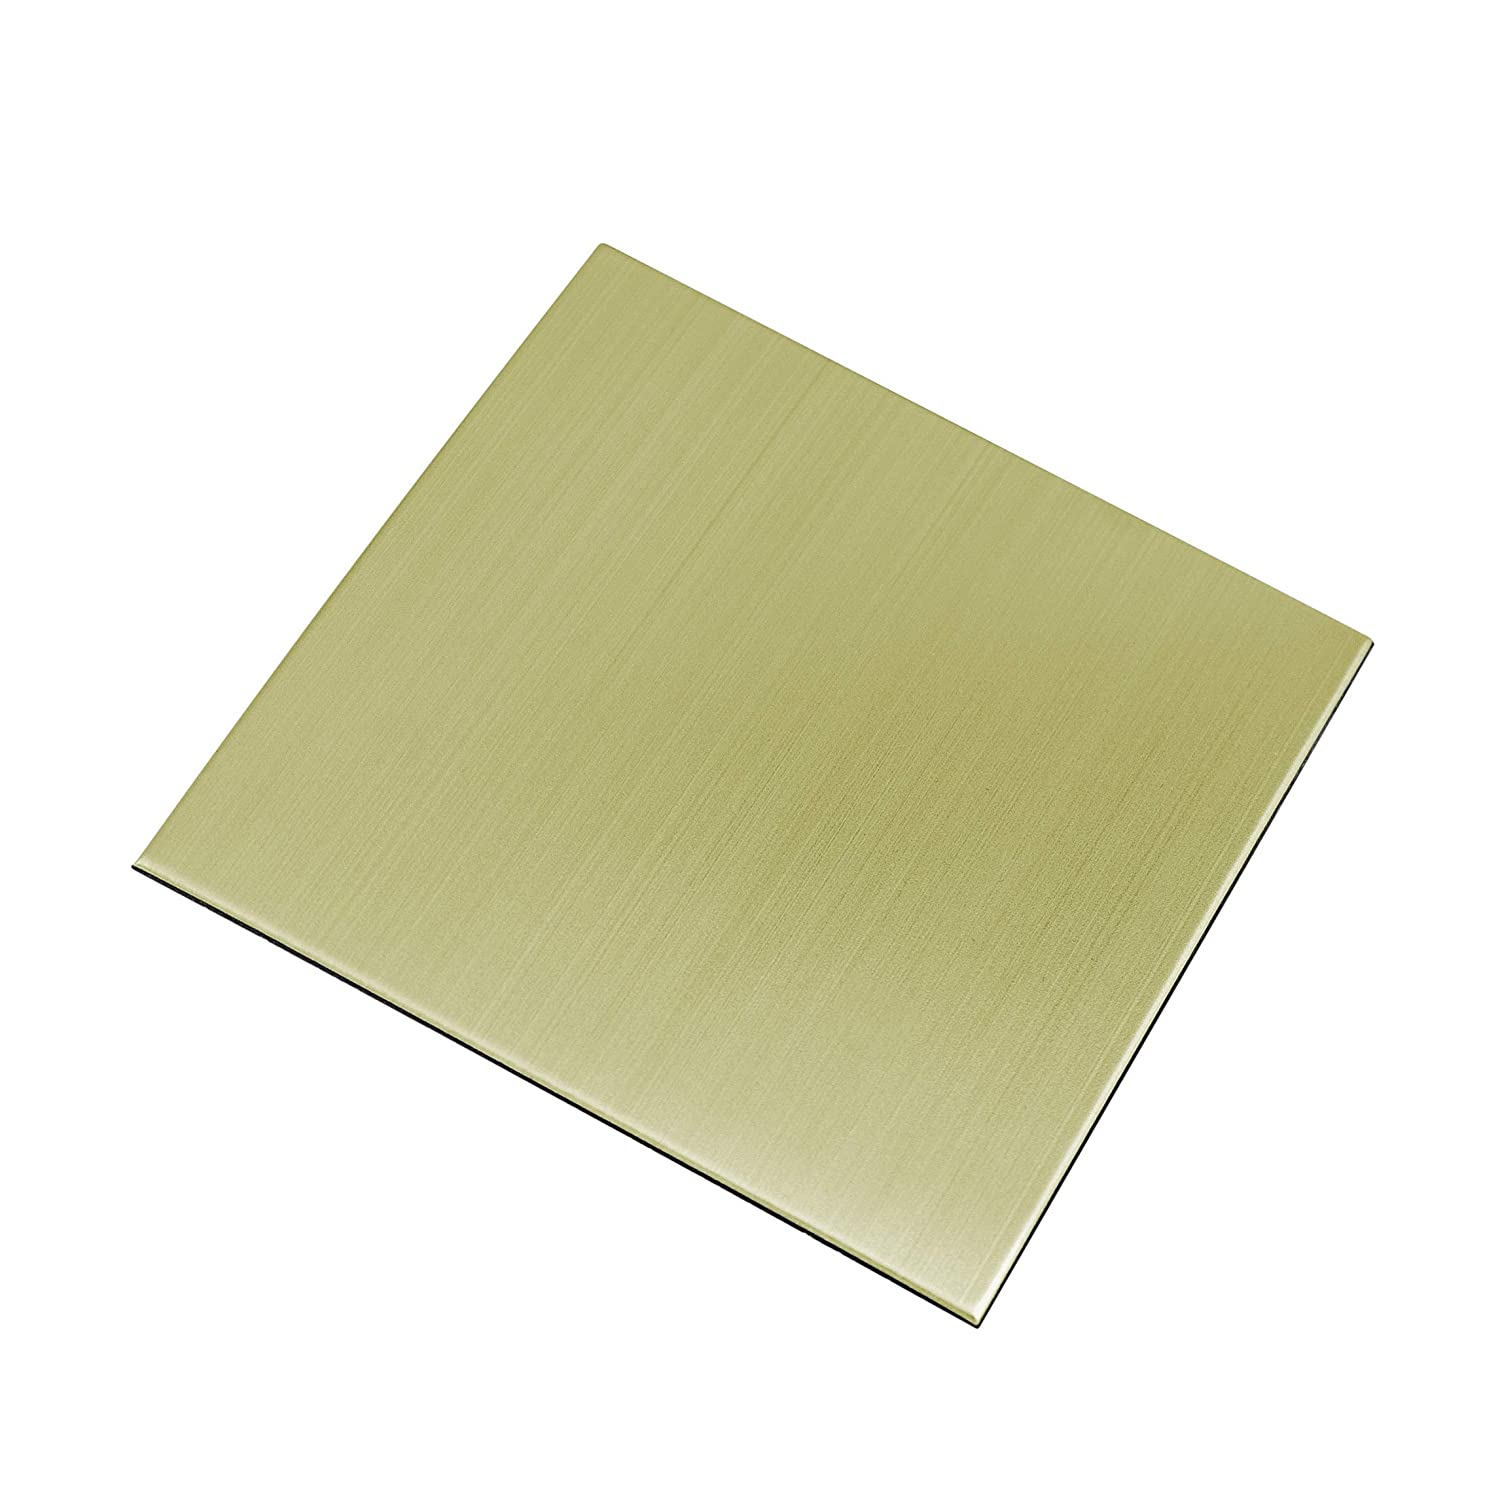 Ver Block Peel and Stick Design Stainless Steel DIY Interior Tile 20PCS